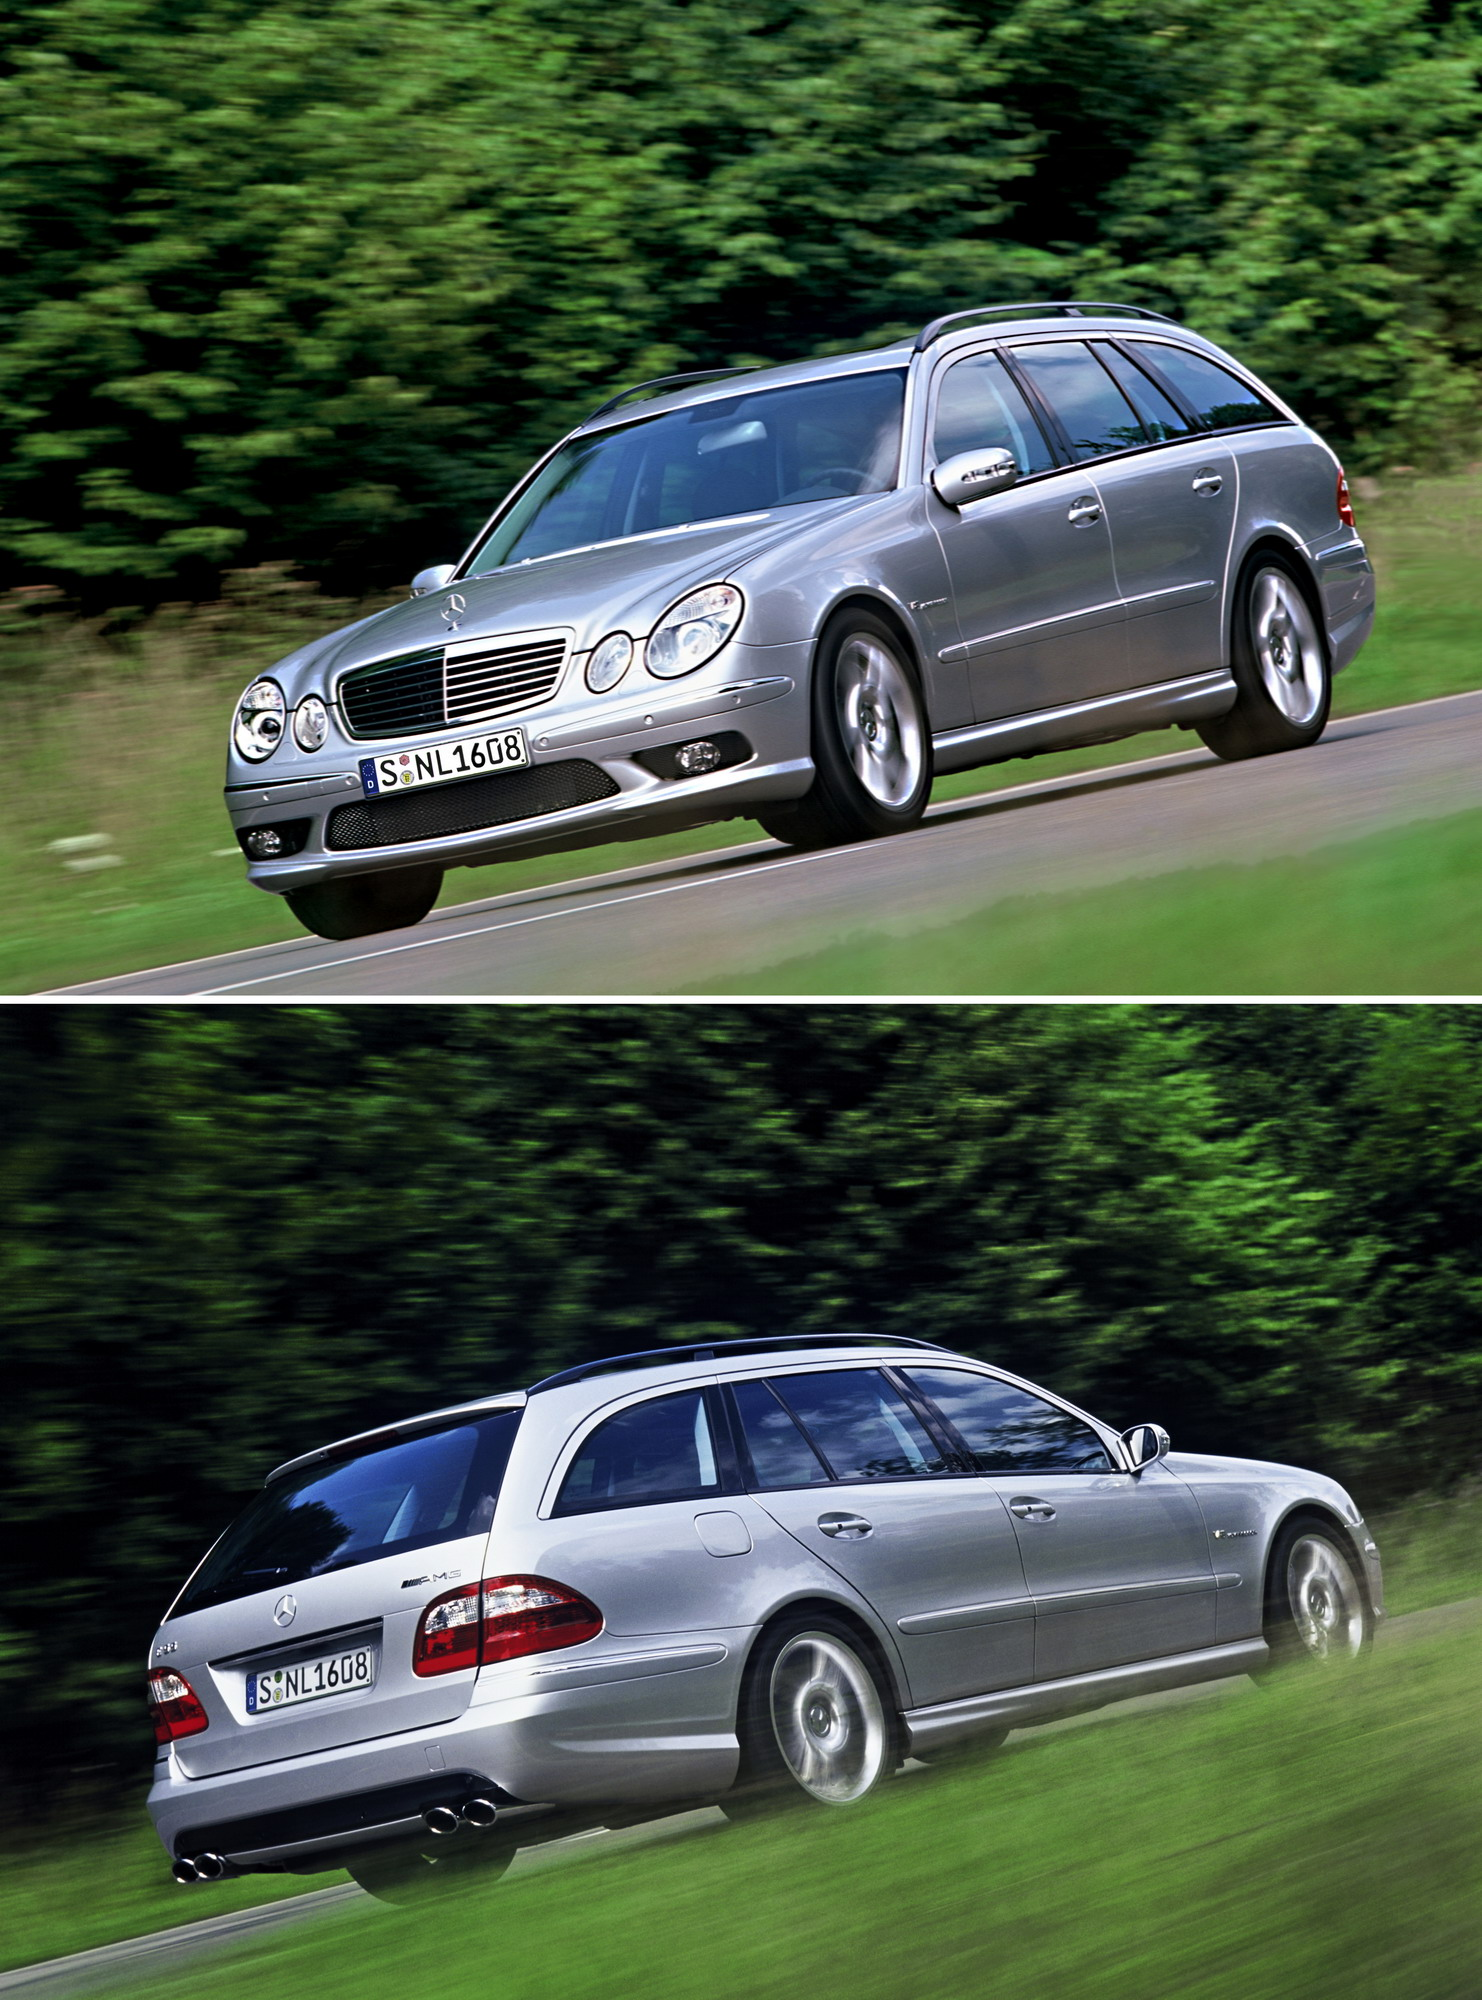 2009 2012 Mercedes W212 E63 AMG Review Gallery Top Speed